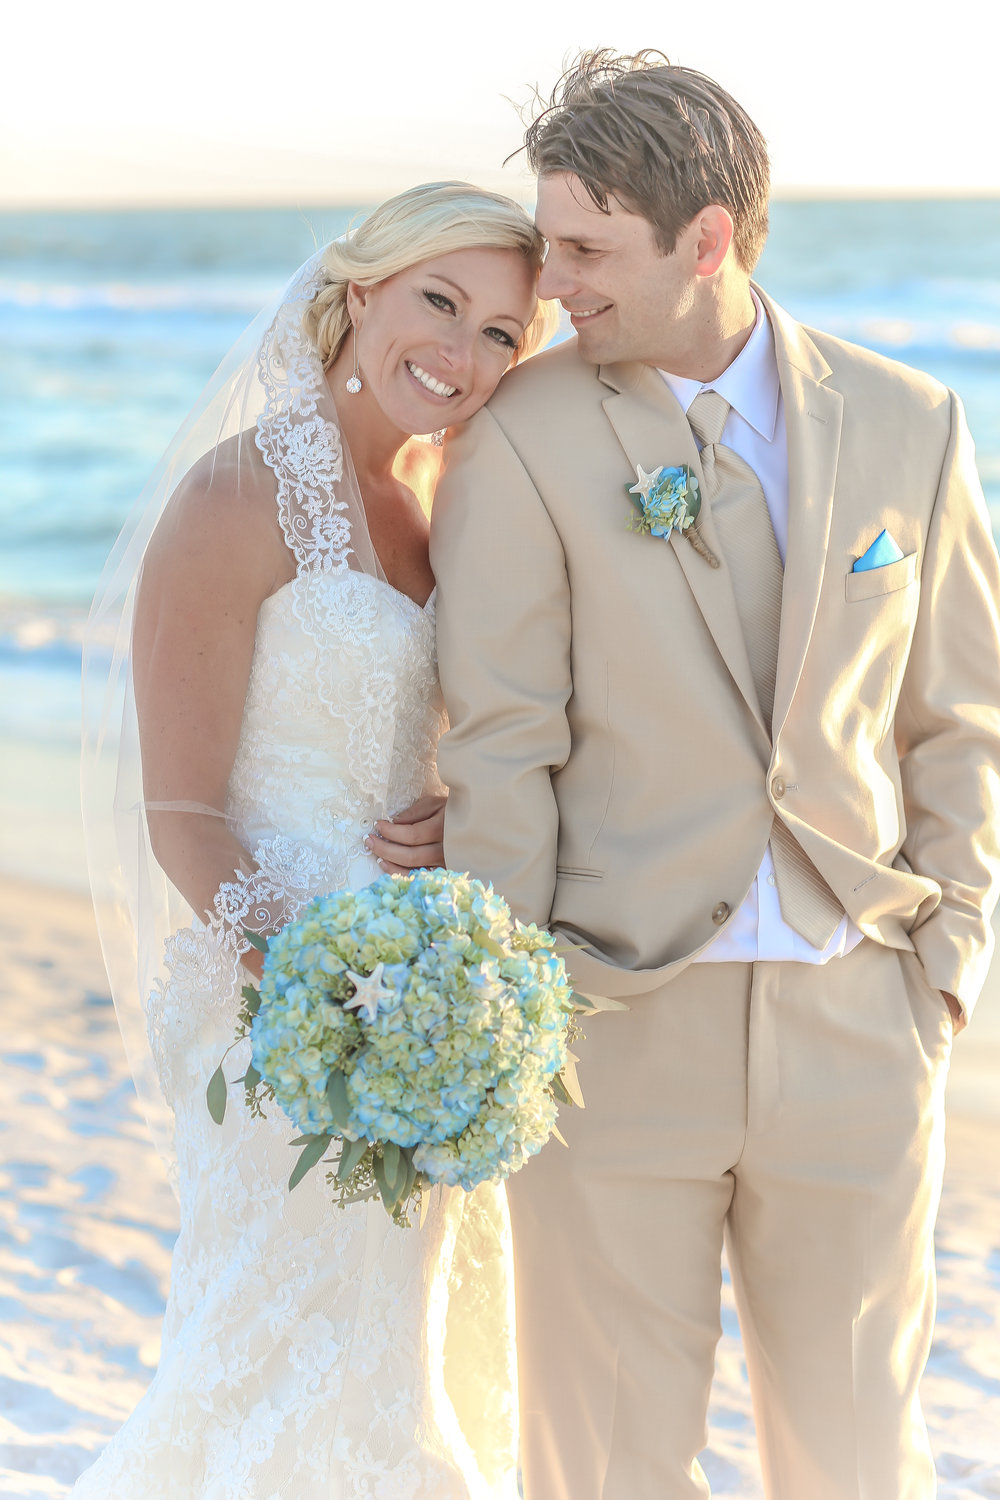 Elegantly styled in colors inspired by the beach, the couple look stunning against the water at sunset.